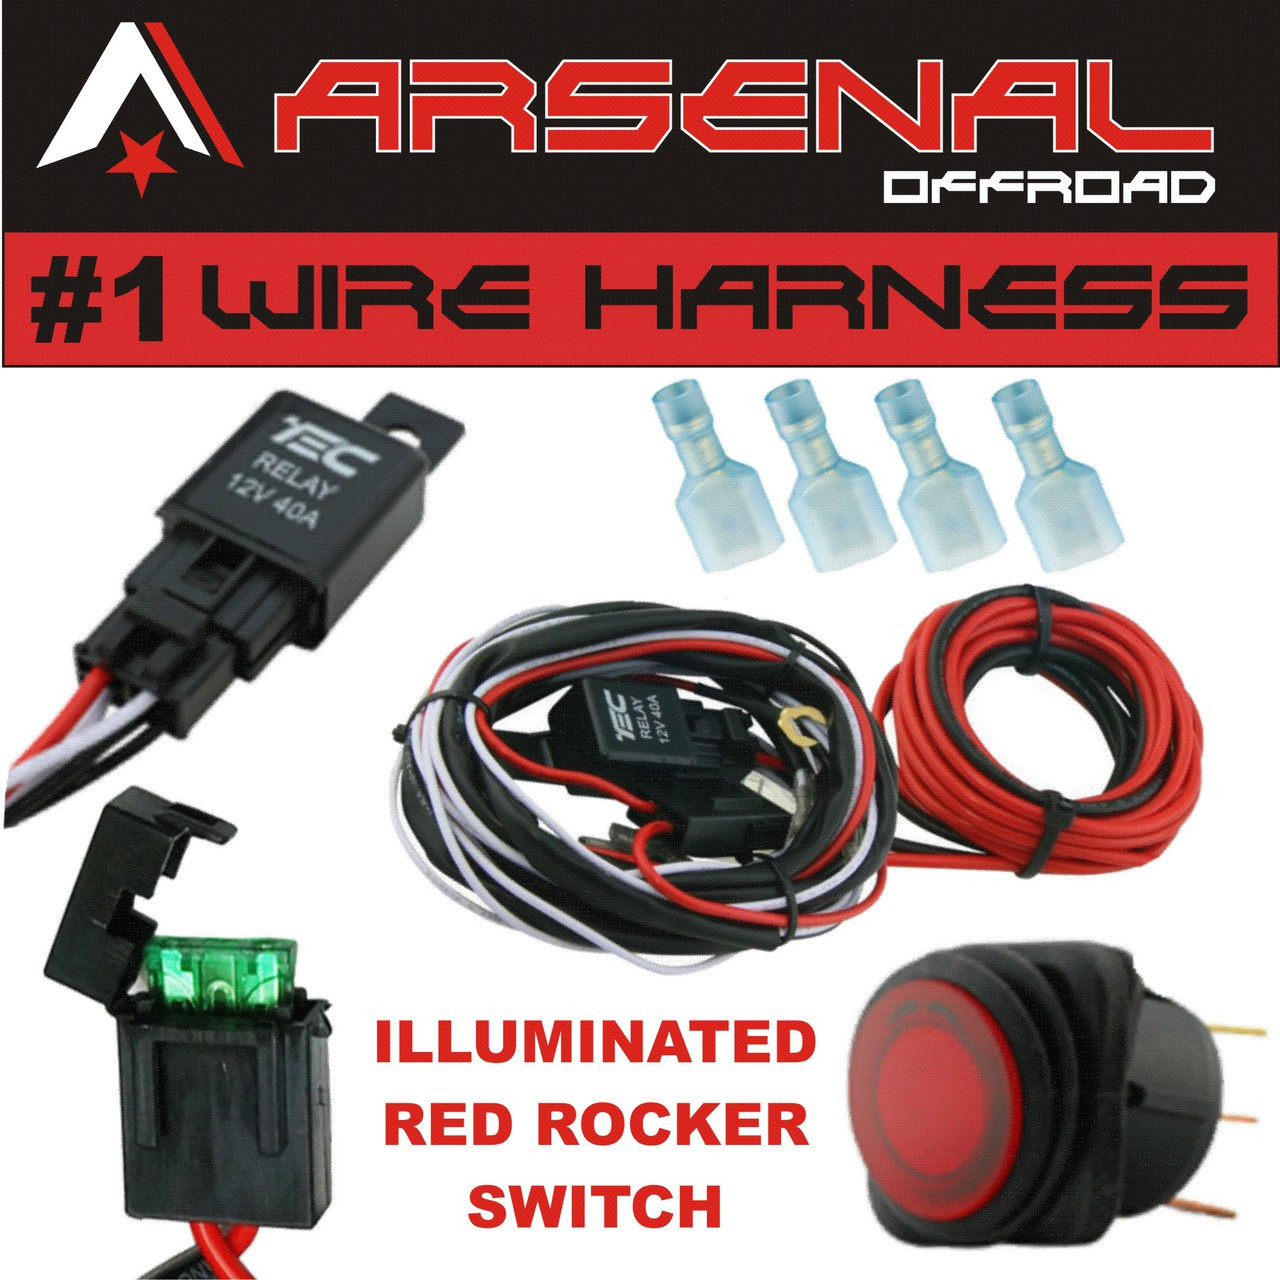 hight resolution of  1 40 amp universal wiring harness comes with 40 relay illuminated on off rocker switch for offroad led light bars and work lights jeep atv utv truck